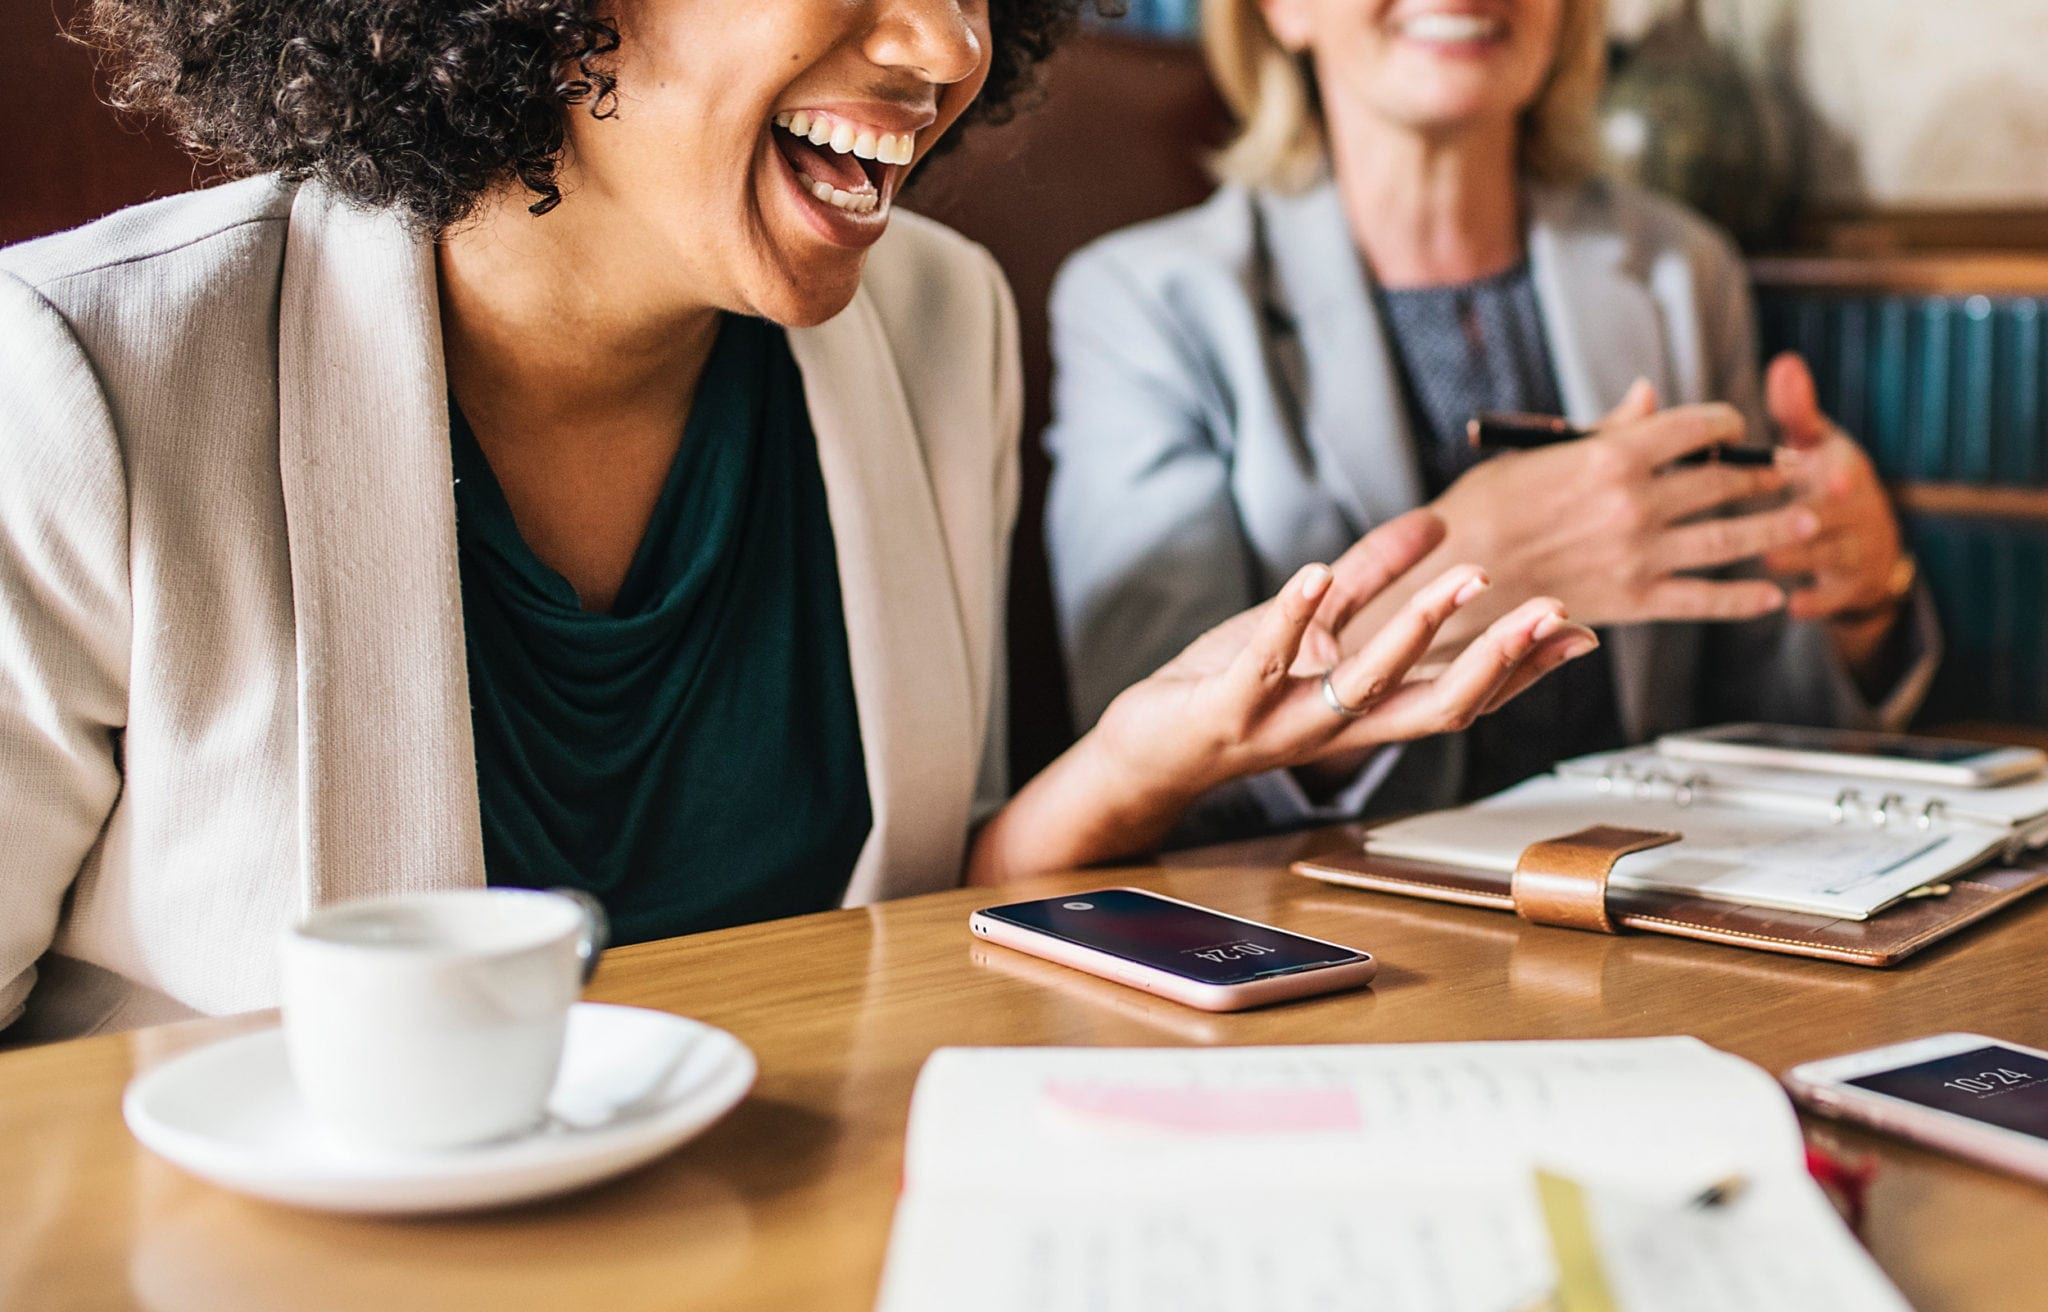 Women laughing while sitting at a table with a cup of coffee, phone and notebooks